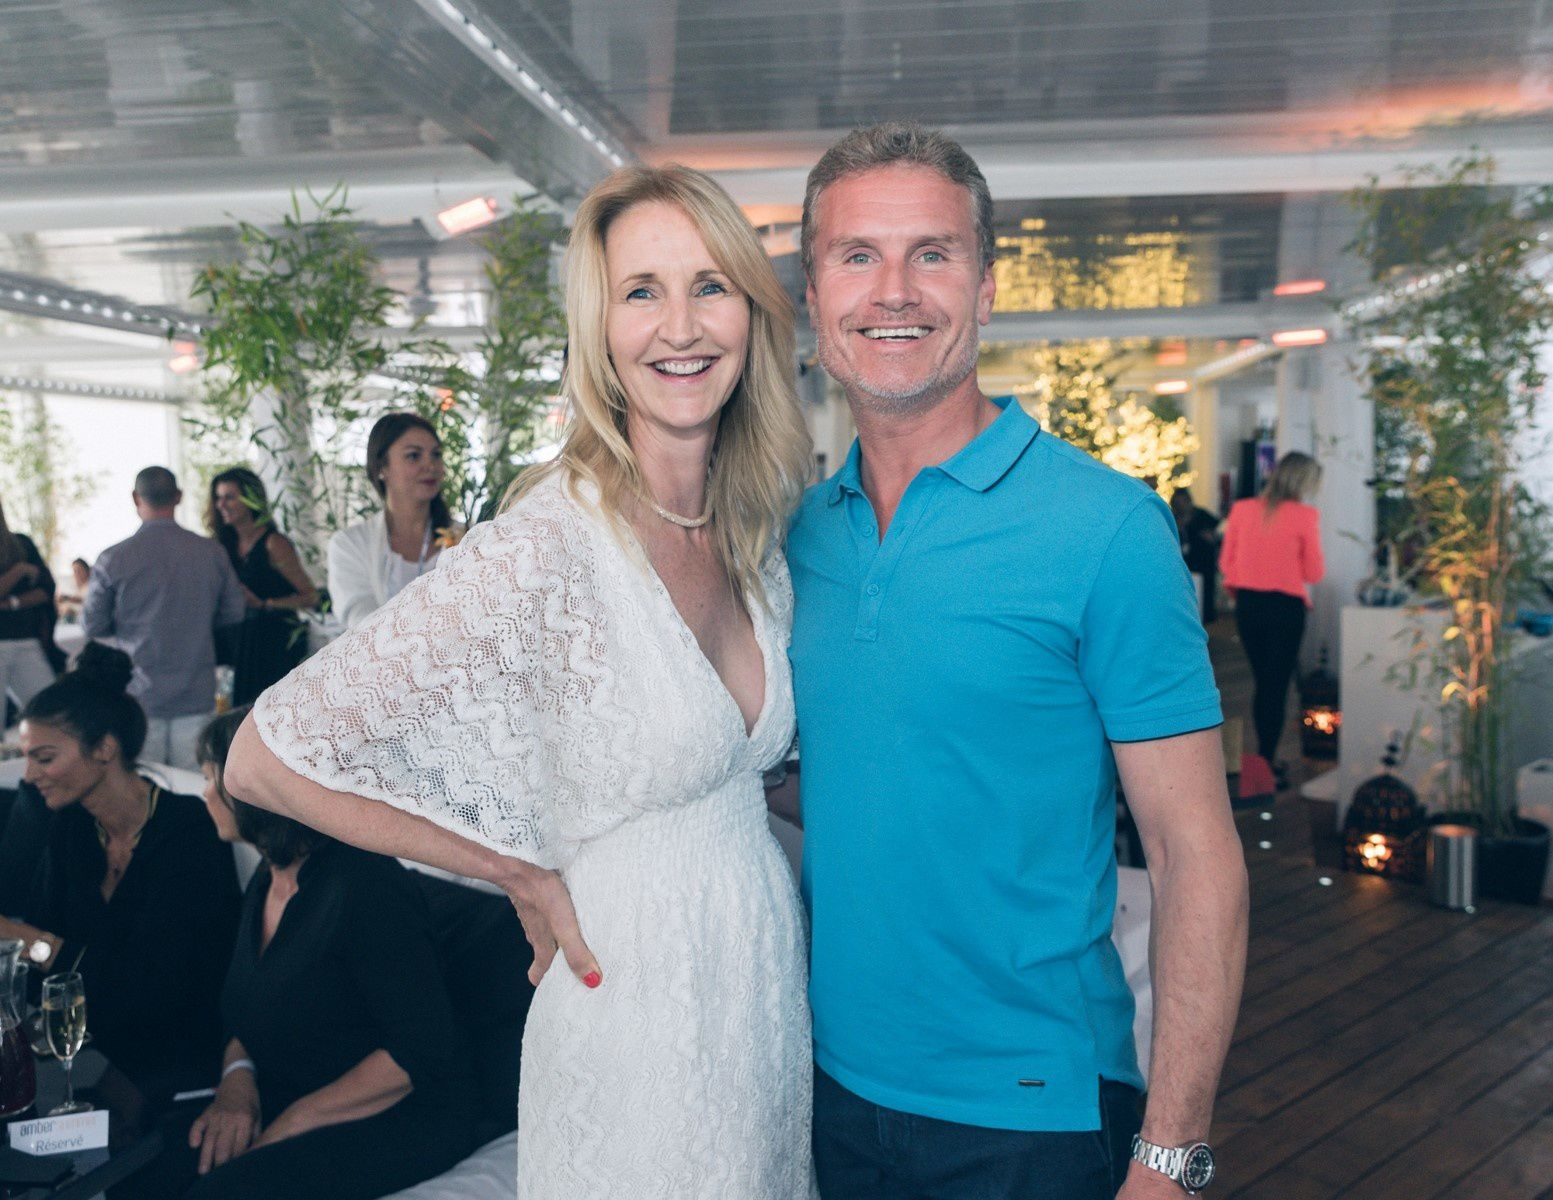 SONIA IRVINE AND DAVID COULTHARD A' AMBER SUMMER